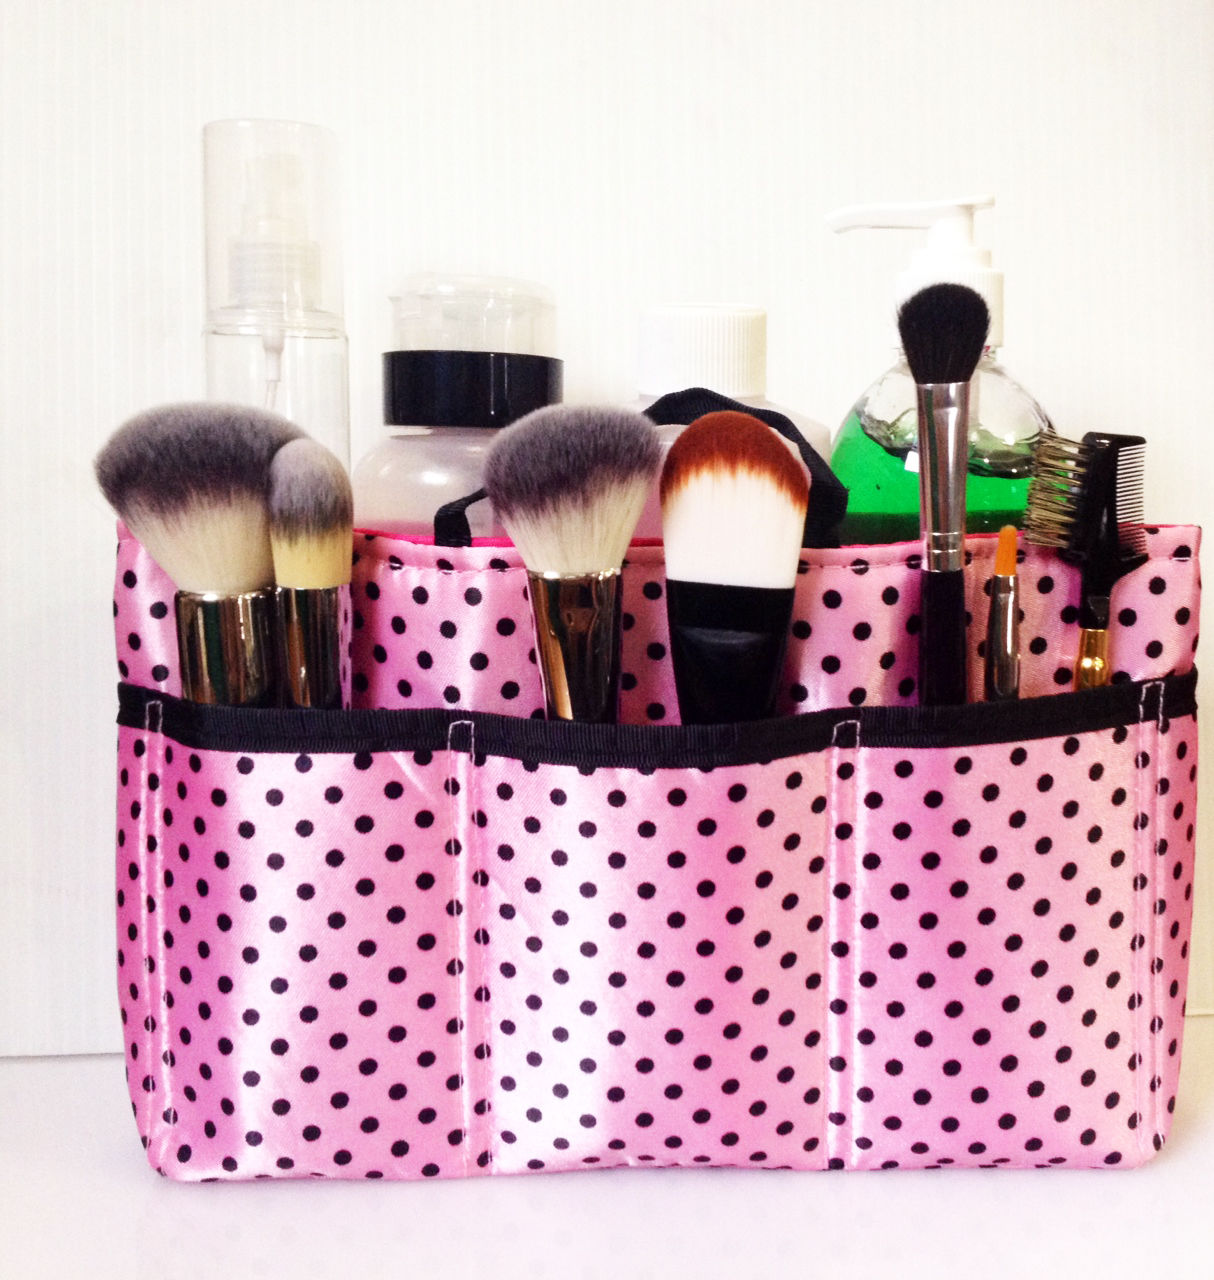 MAKEUP CASE BAG HAIR NAIL ONSET TOILETRY ORGANIZER HANDY TRAVEL GROOMING